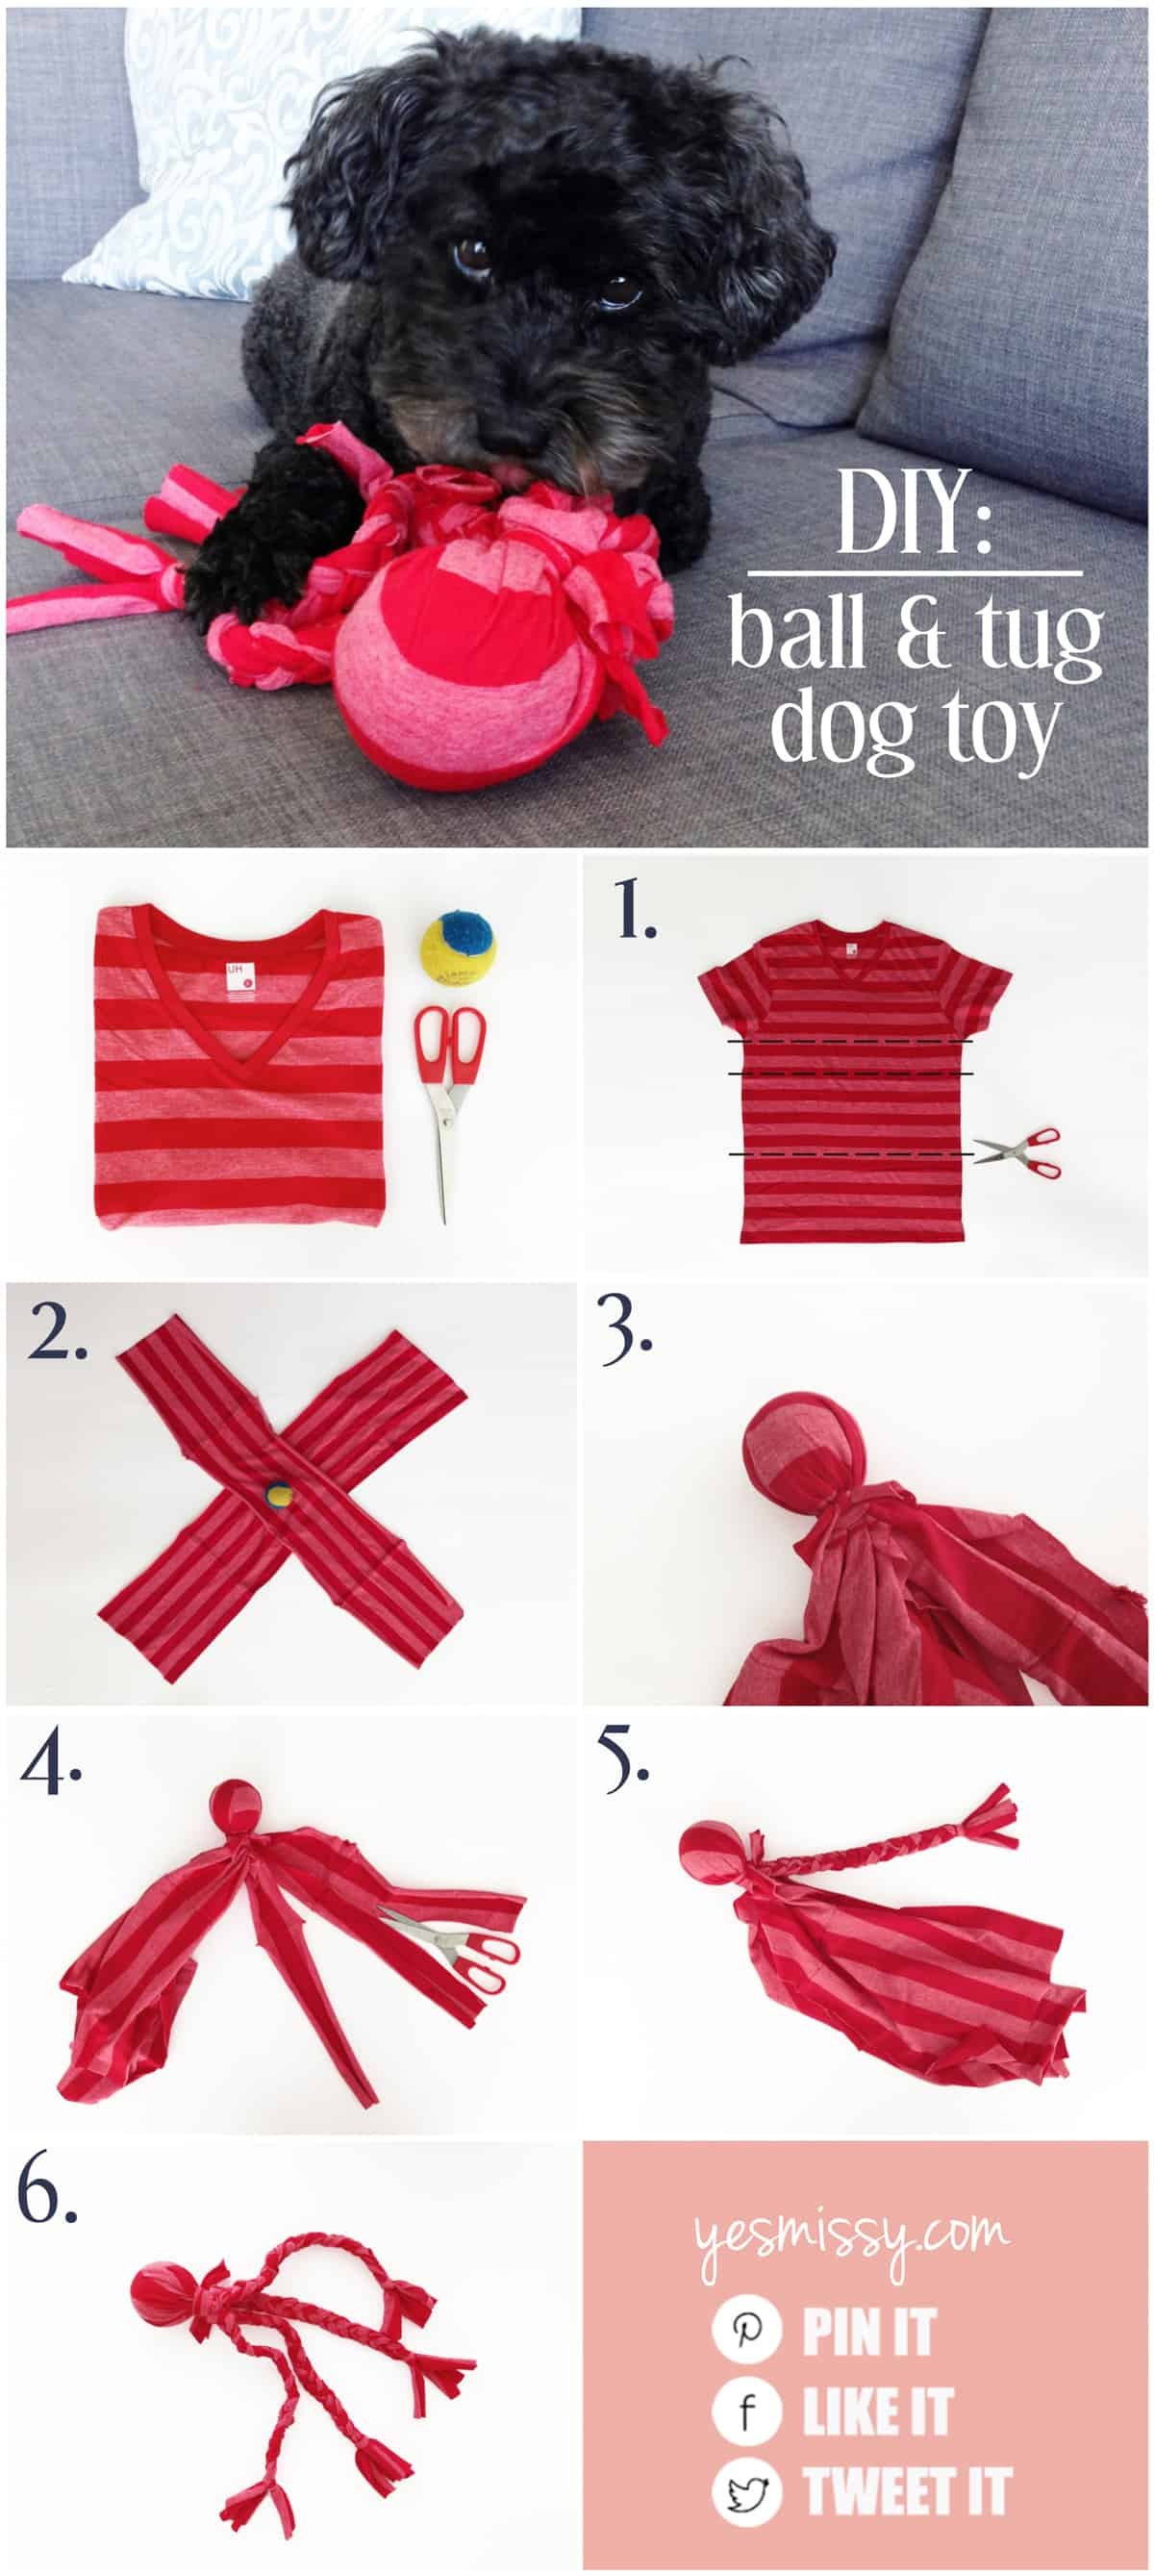 Sewing Upcycled Clothing Easy Diy 15 Ways To Repurpose Your Old T Shirts